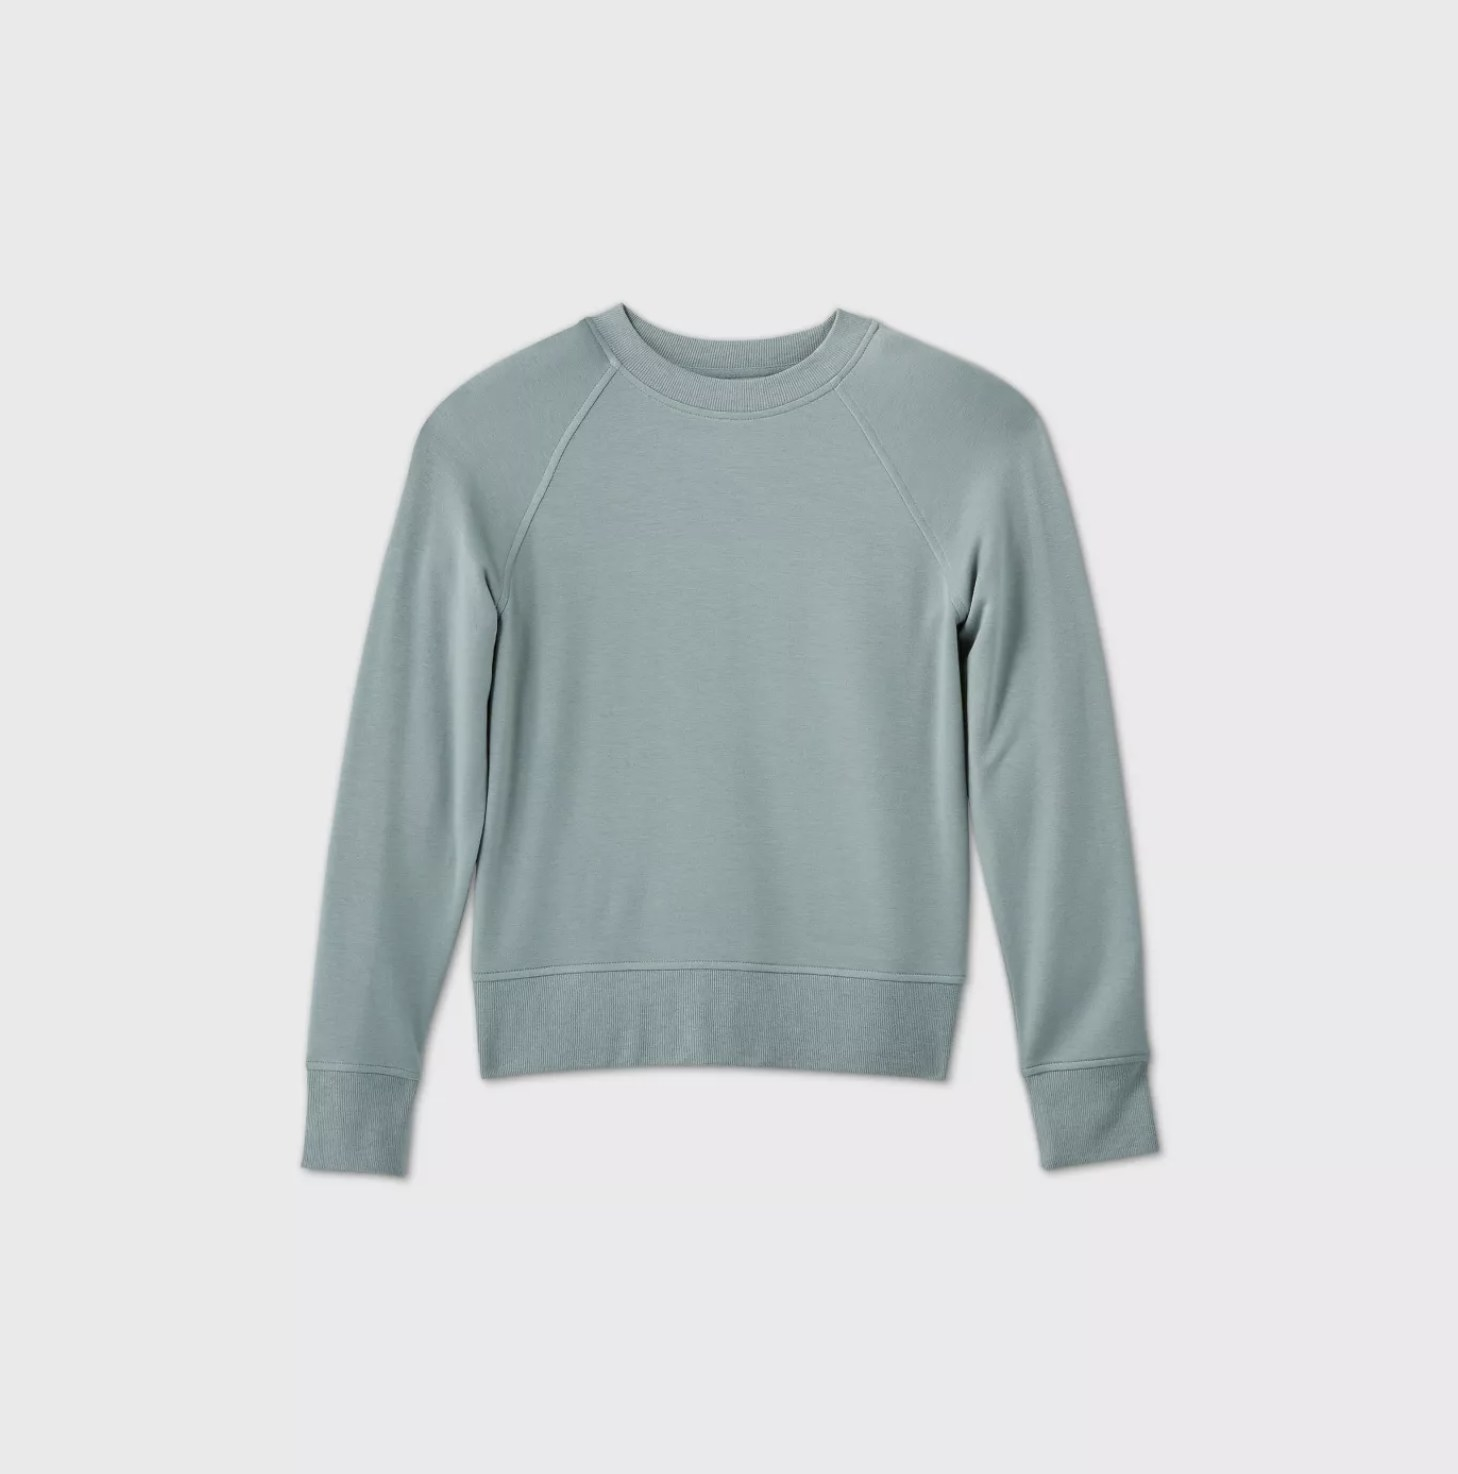 A light blue crew-neck pullover sweater